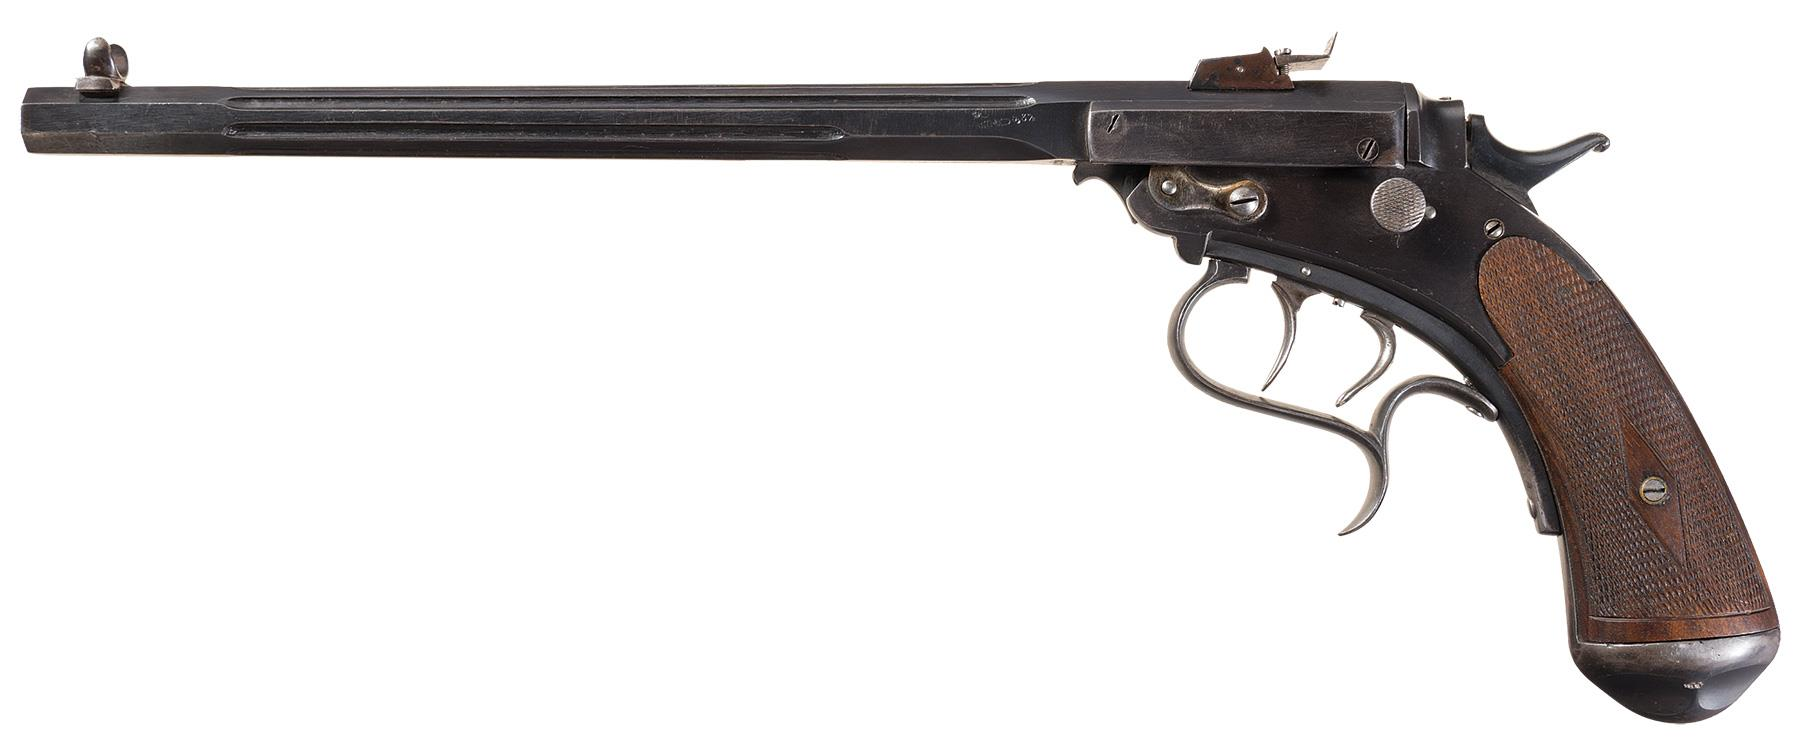 The Scharfenberg has a quite upright grip similar to what we would expect to find on a revolver.